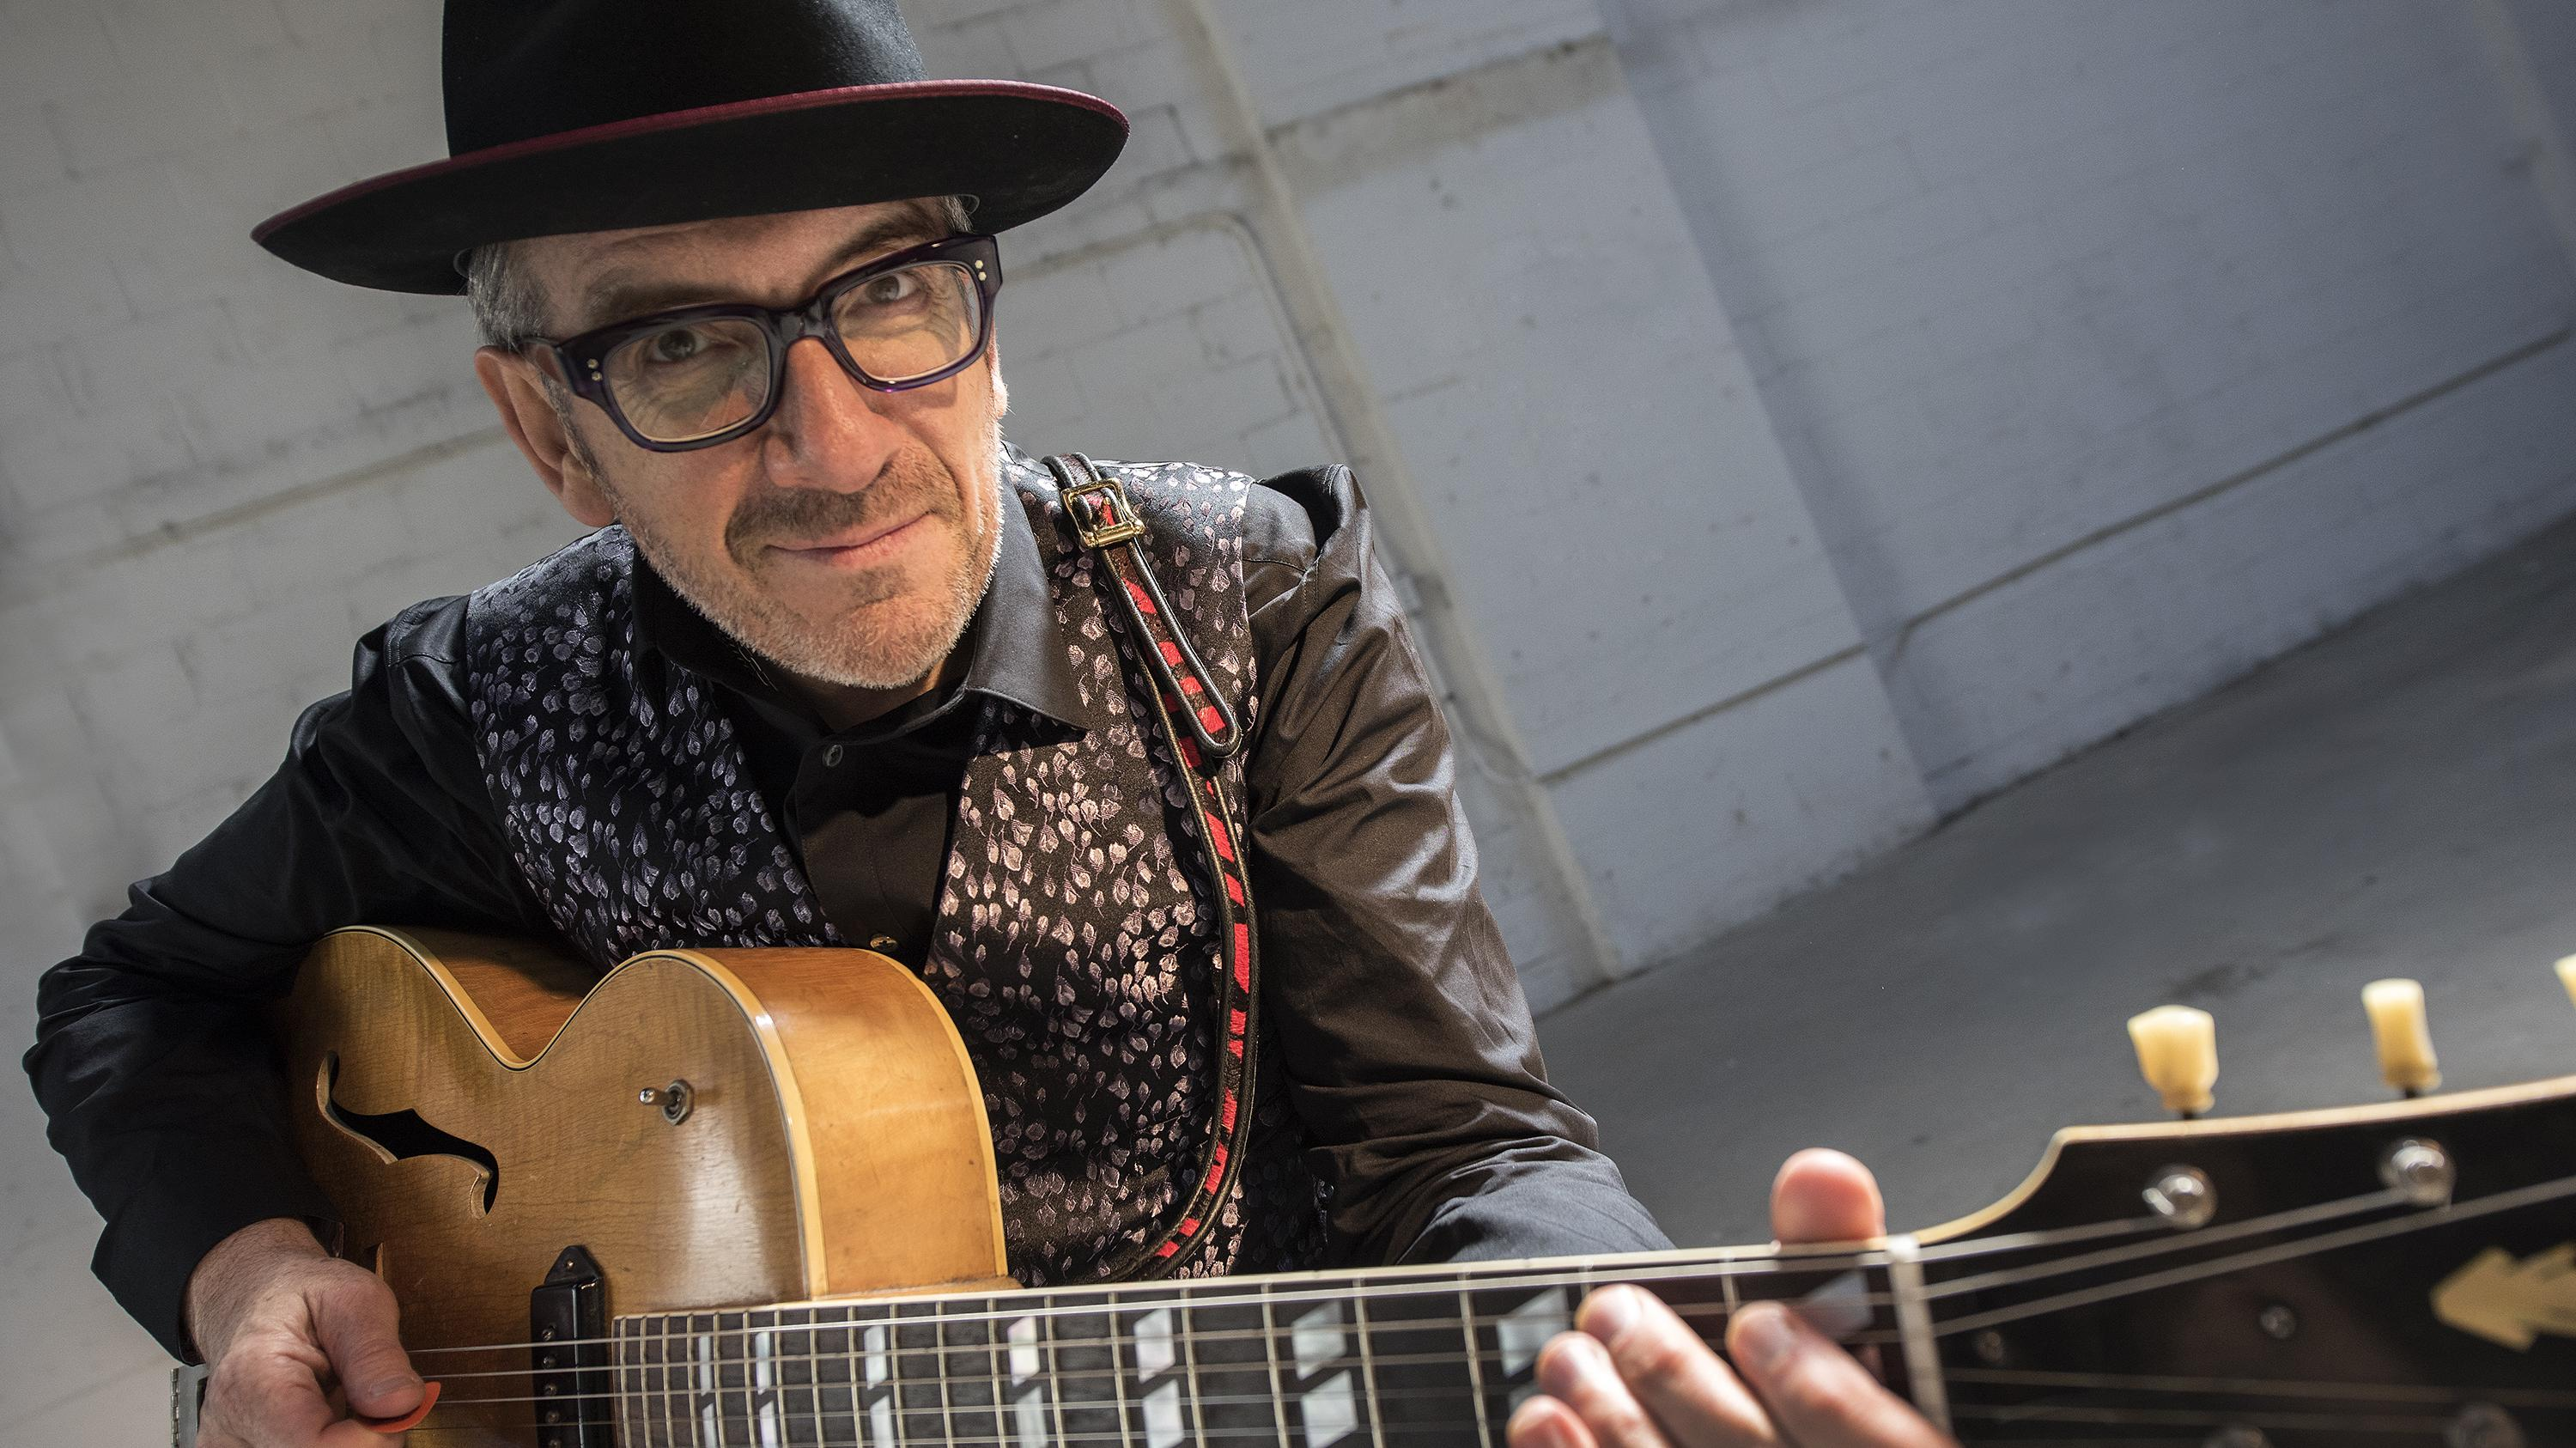 elvis_costello_do_not_crop_photo_credit_james_omara_750_5284_2.jpg